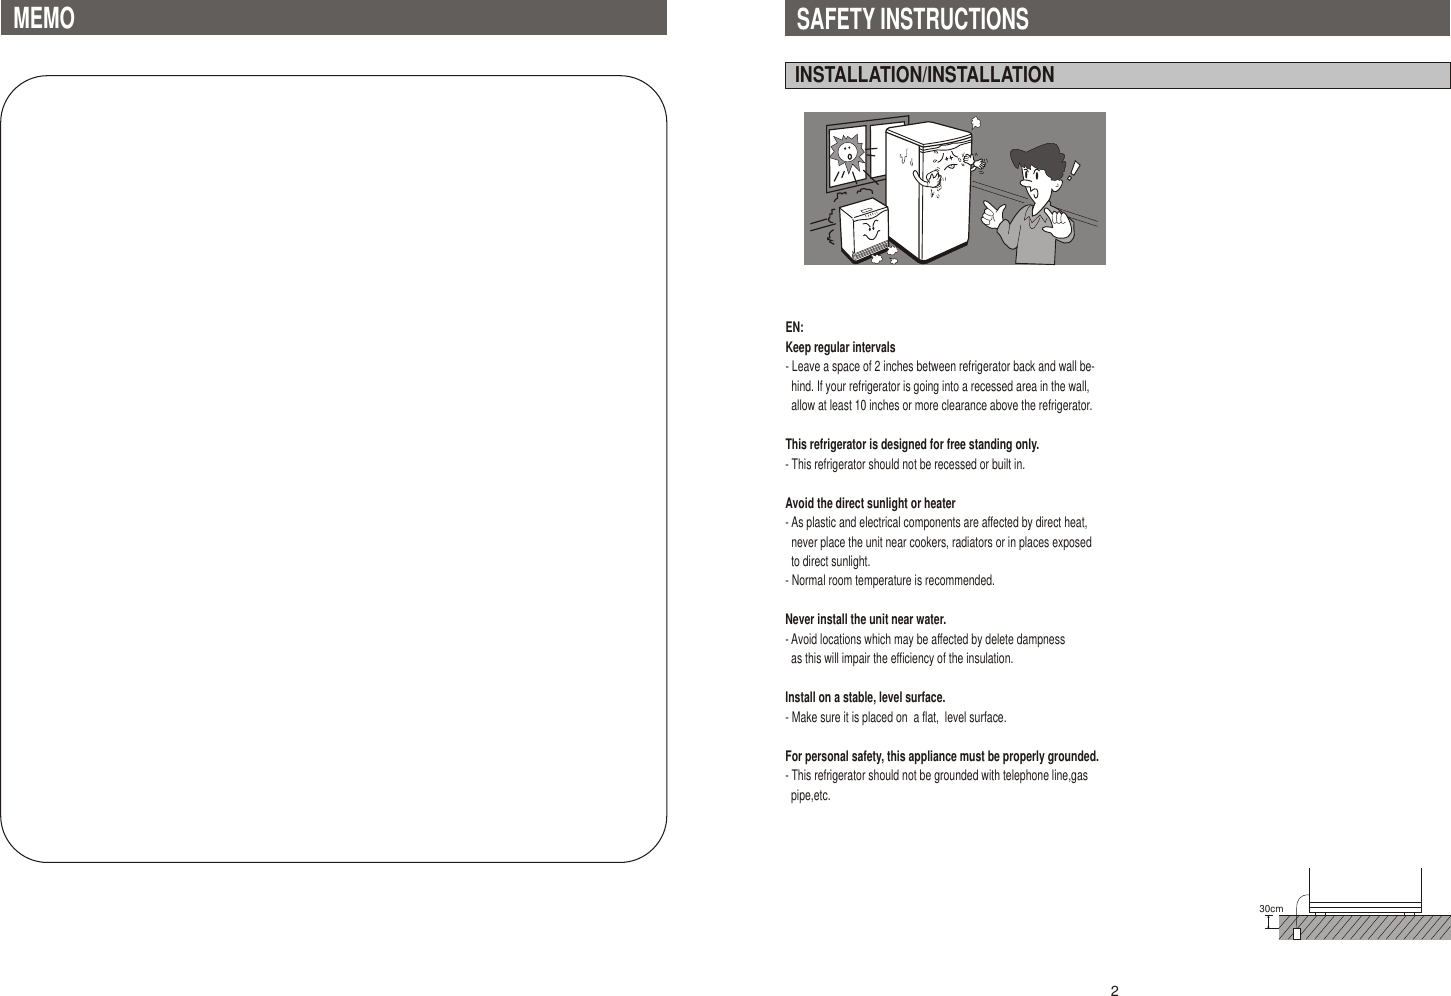 Samsung srg 118 users manual core118 page 3 of 9 samsung samsung srg 118 users manual fandeluxe Image collections